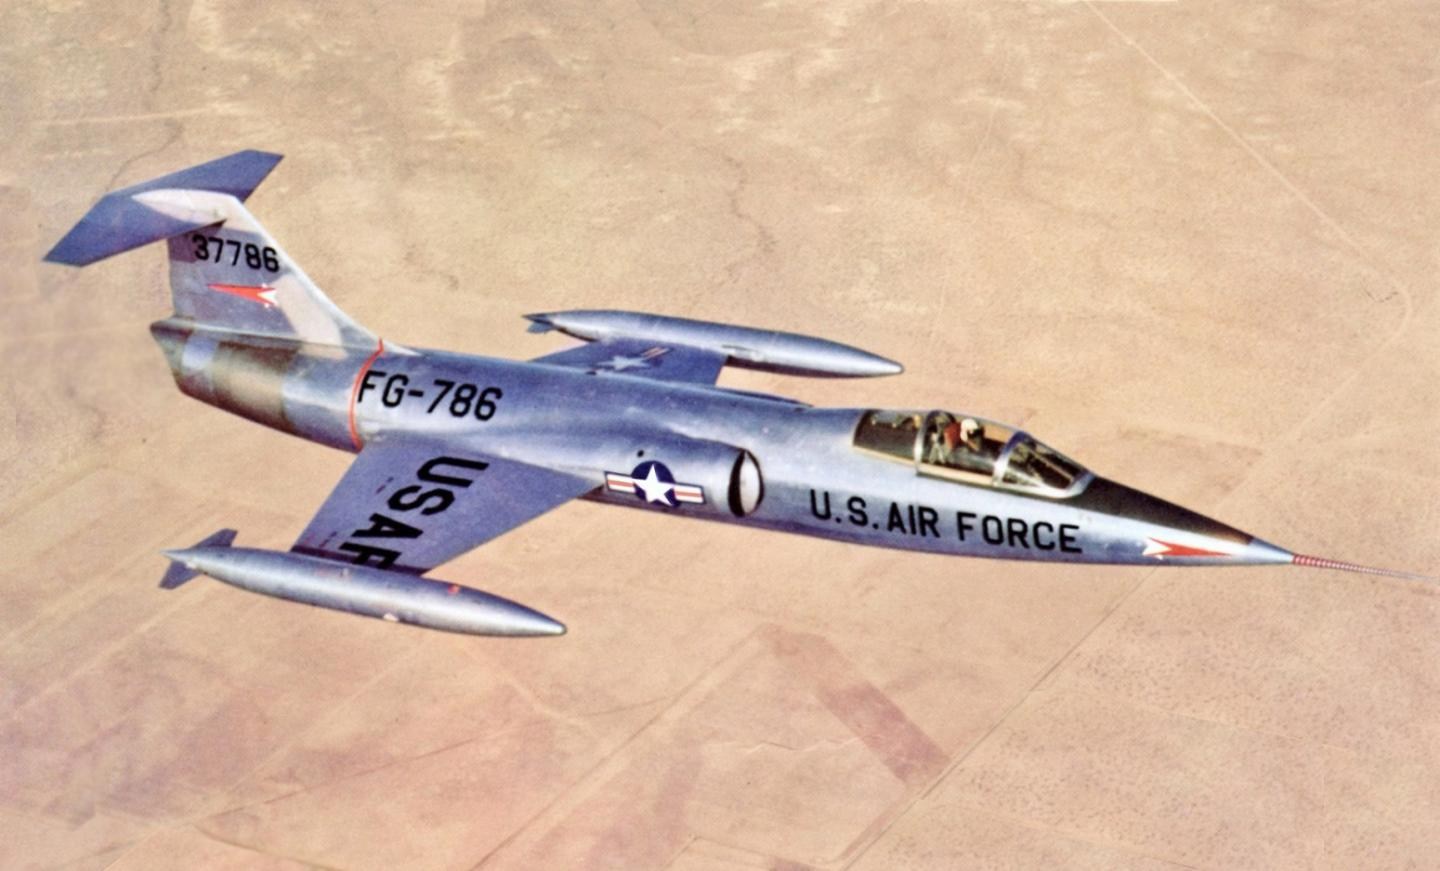 See This Old Plane? It Killed 4 F-15s In Simulated Battles in the Sky